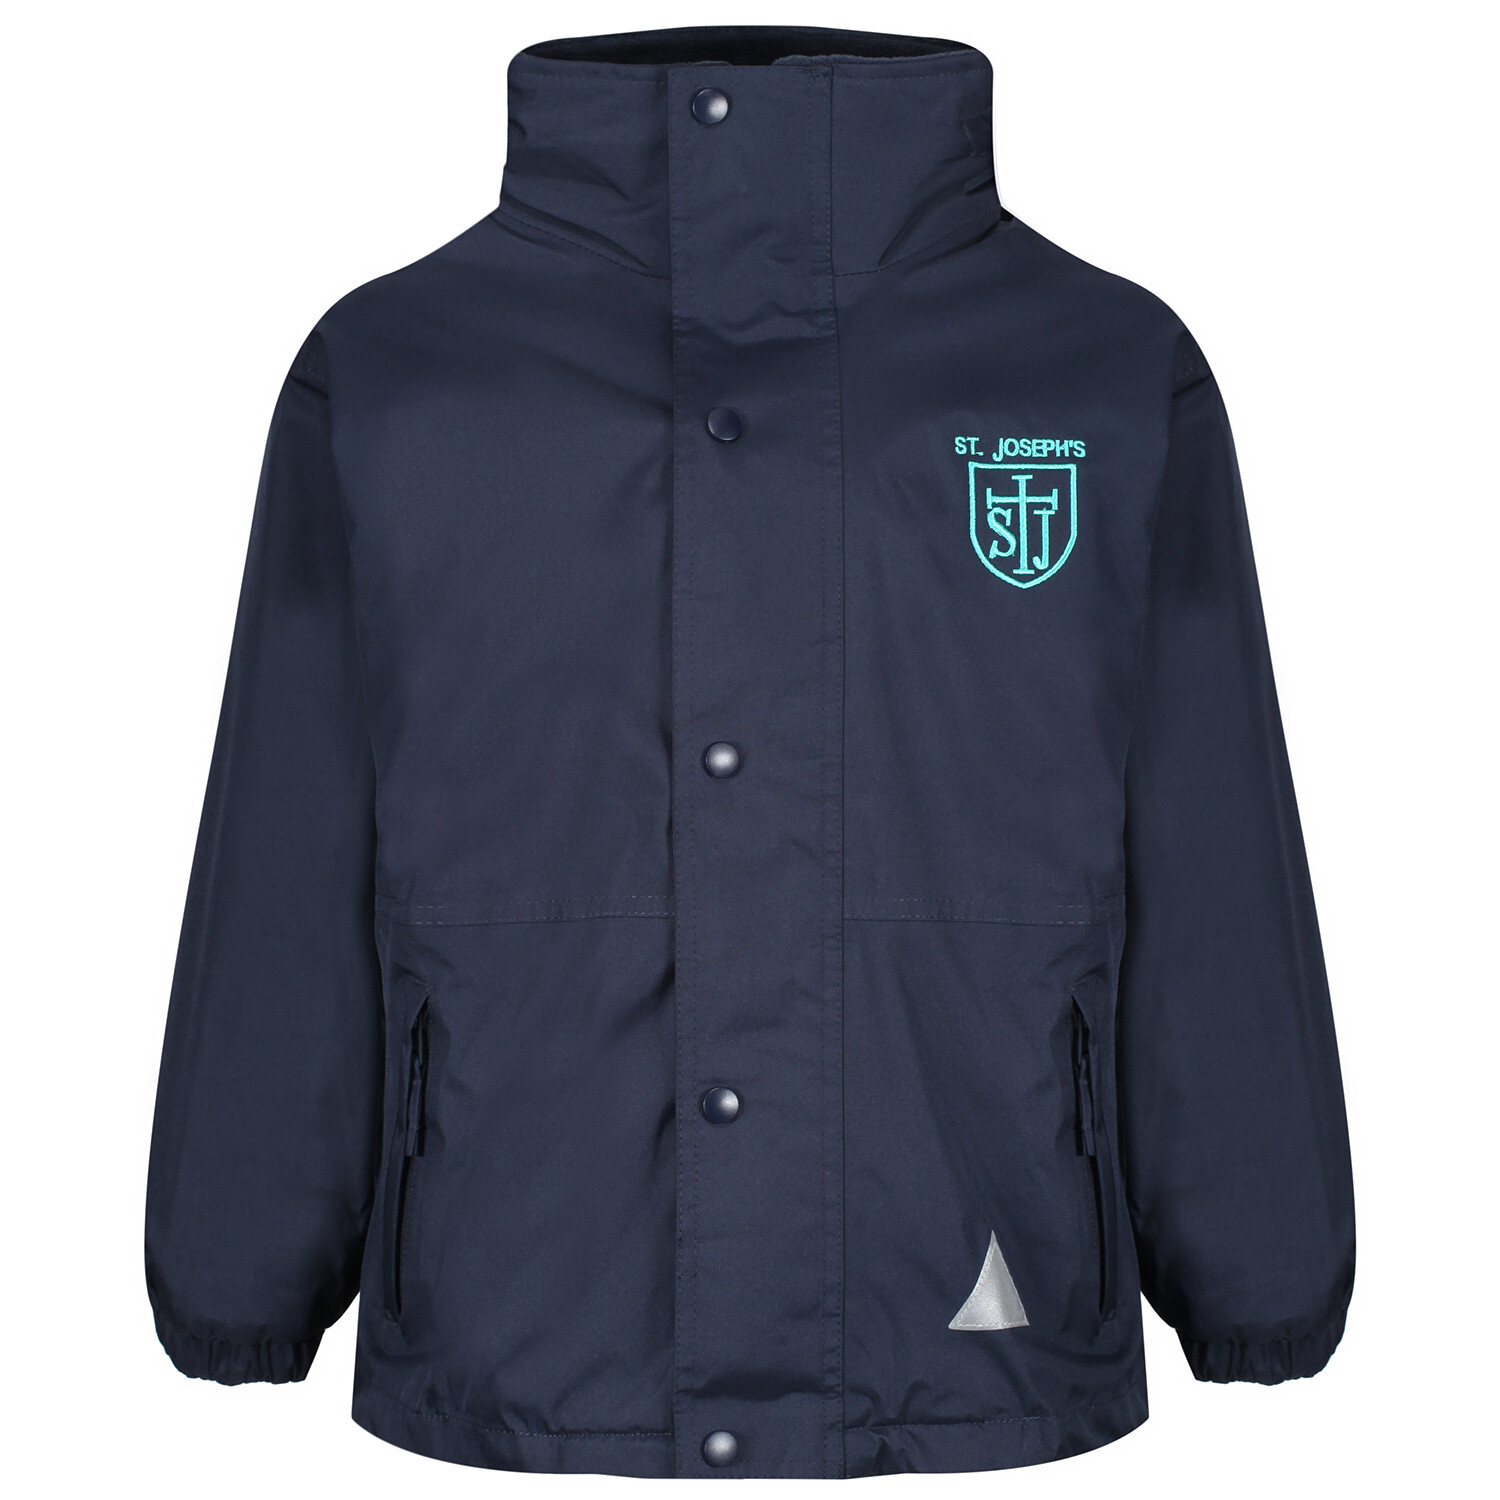 St Joseph's Primary Heavy Rain Jacket (Fleece lined)